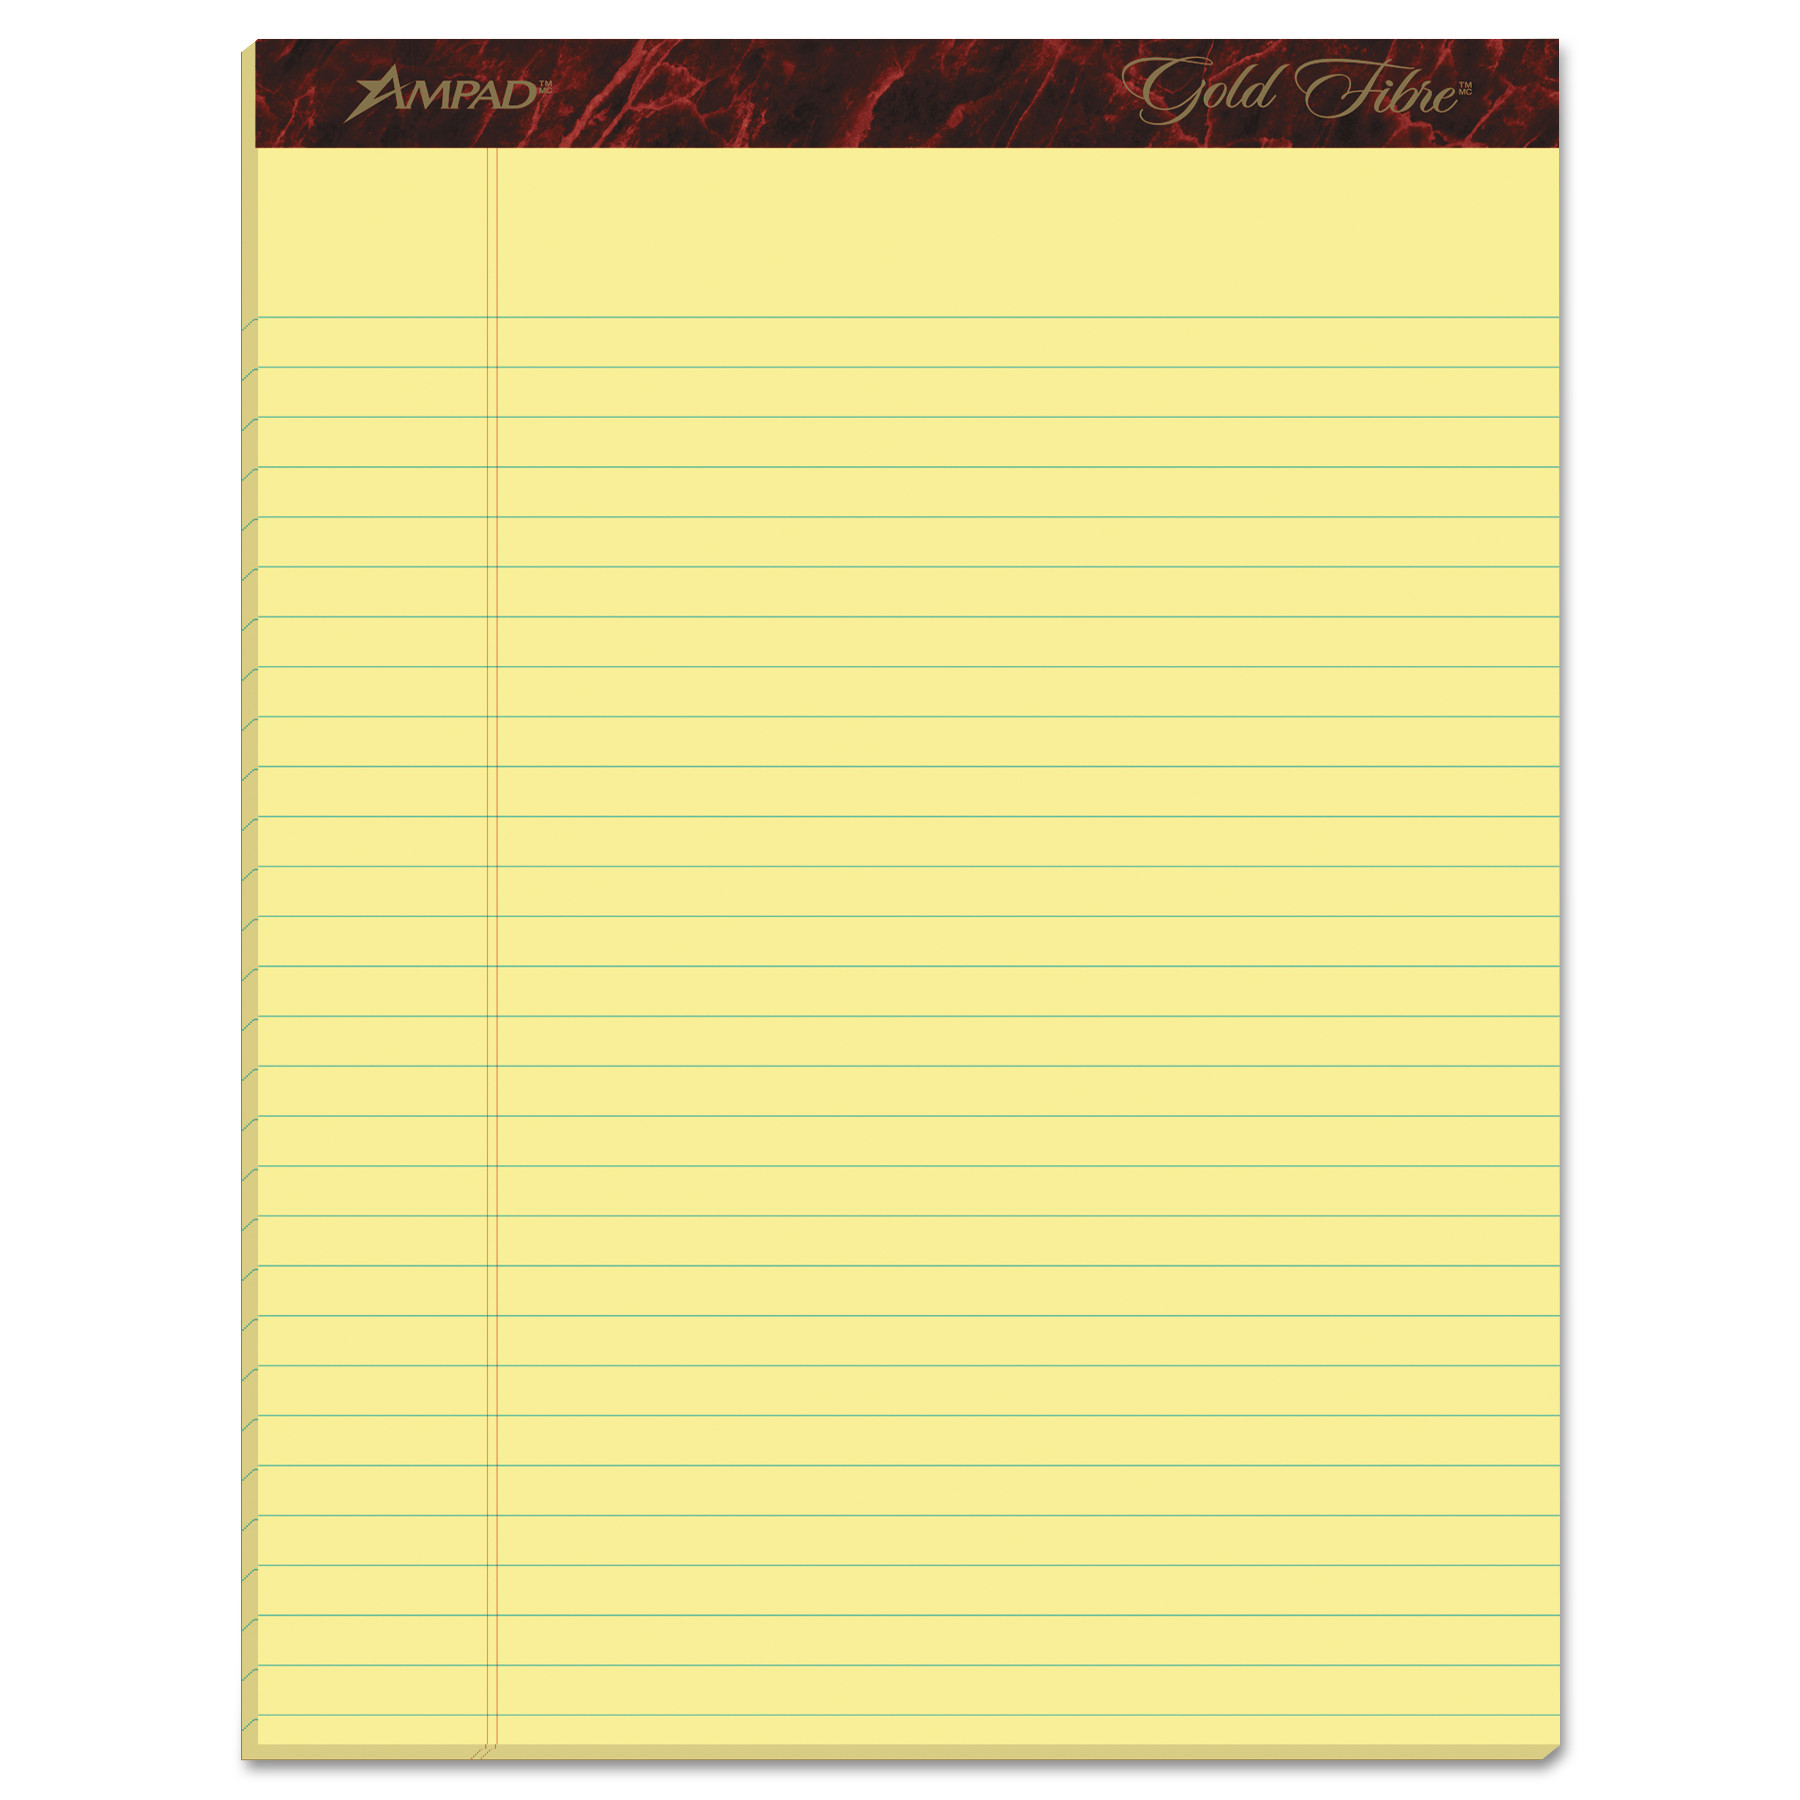 Ampad Gold Fibre Ruled Pad, 8 1/2 x 11 3/4, Canary, 50 Sheets, Dozen -TOP20020